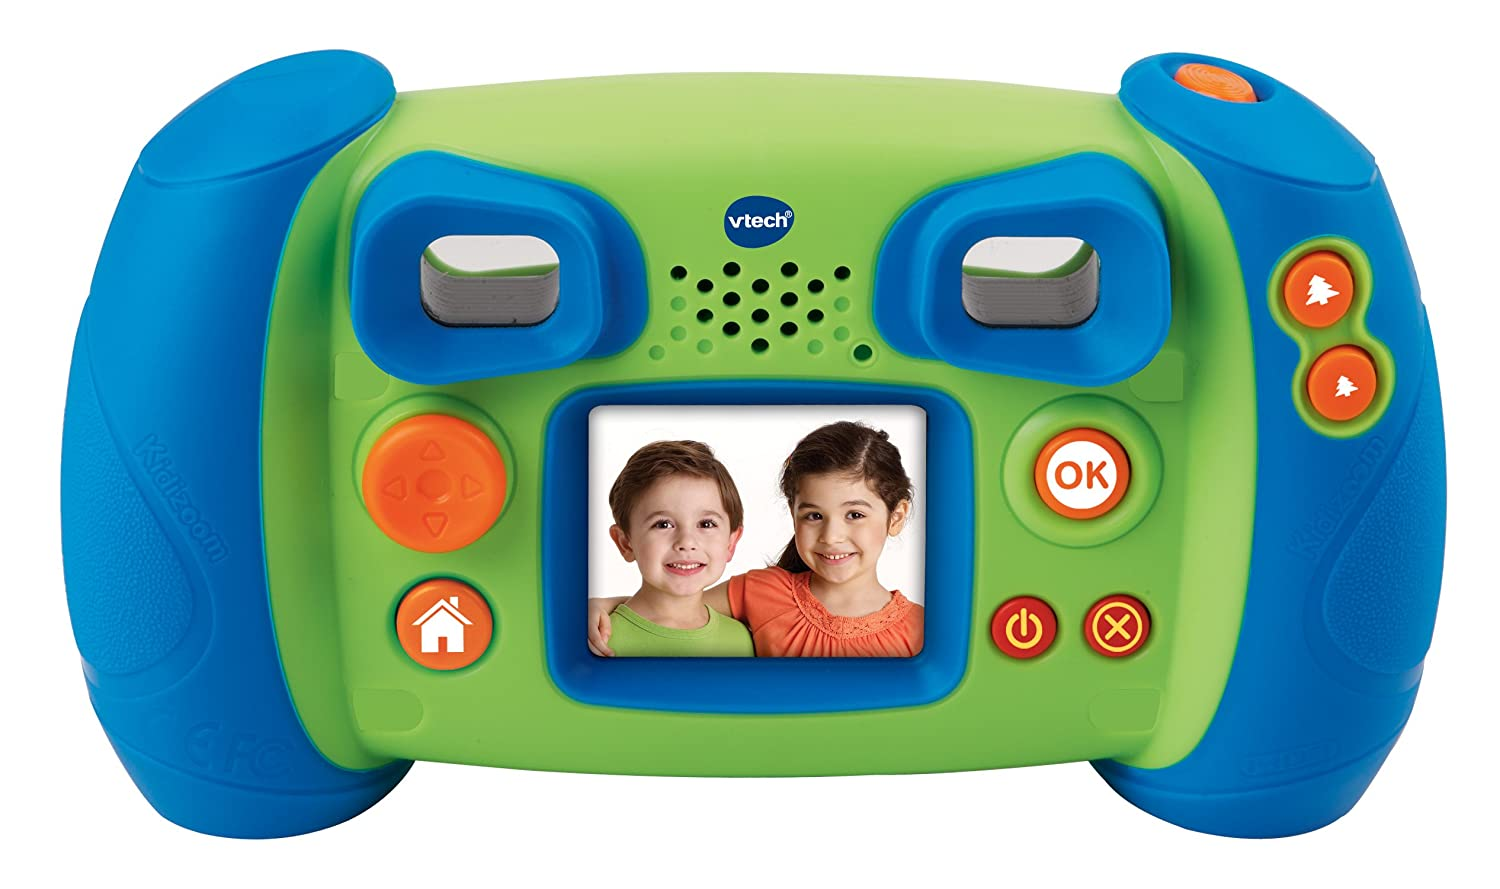 Camera Vtech Kids Camera amazon com vtech kidizoom camera connect blue discontinued by manufacturer toys games